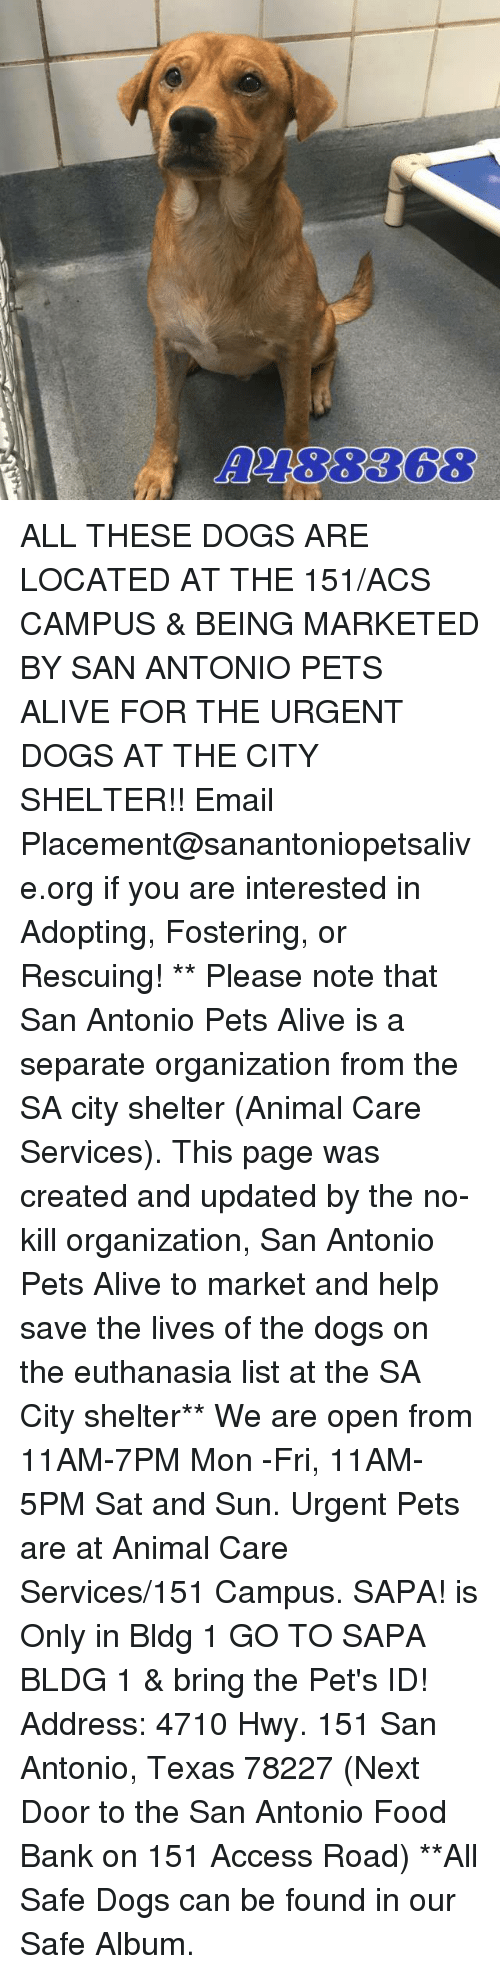 Alive, Dogs, and Food: A2188368 ALL THESE DOGS ARE LOCATED AT THE 151/ACS CAMPUS & BEING MARKETED BY SAN ANTONIO PETS ALIVE FOR THE URGENT DOGS AT THE CITY SHELTER!!  Email Placement@sanantoniopetsalive.org if you are interested in Adopting, Fostering, or Rescuing!                                                                                                                                                                                                                                                                                                                                                             ** Please note that San Antonio Pets Alive is a separate organization from the SA city shelter (Animal Care Services). This page was created and updated by the no-kill organization, San Antonio Pets Alive to market and help save the lives of the dogs on the euthanasia list at the SA City shelter**  We are open from 11AM-7PM Mon -Fri, 11AM-5PM Sat and Sun. Urgent Pets are at Animal Care Services/151 Campus. SAPA! is Only in Bldg 1 GO TO SAPA BLDG 1 & bring the Pet's ID! Address: 4710 Hwy. 151 San Antonio, Texas 78227 (Next Door to the San Antonio Food Bank on 151 Access Road) **All Safe Dogs can be found in our Safe Album.